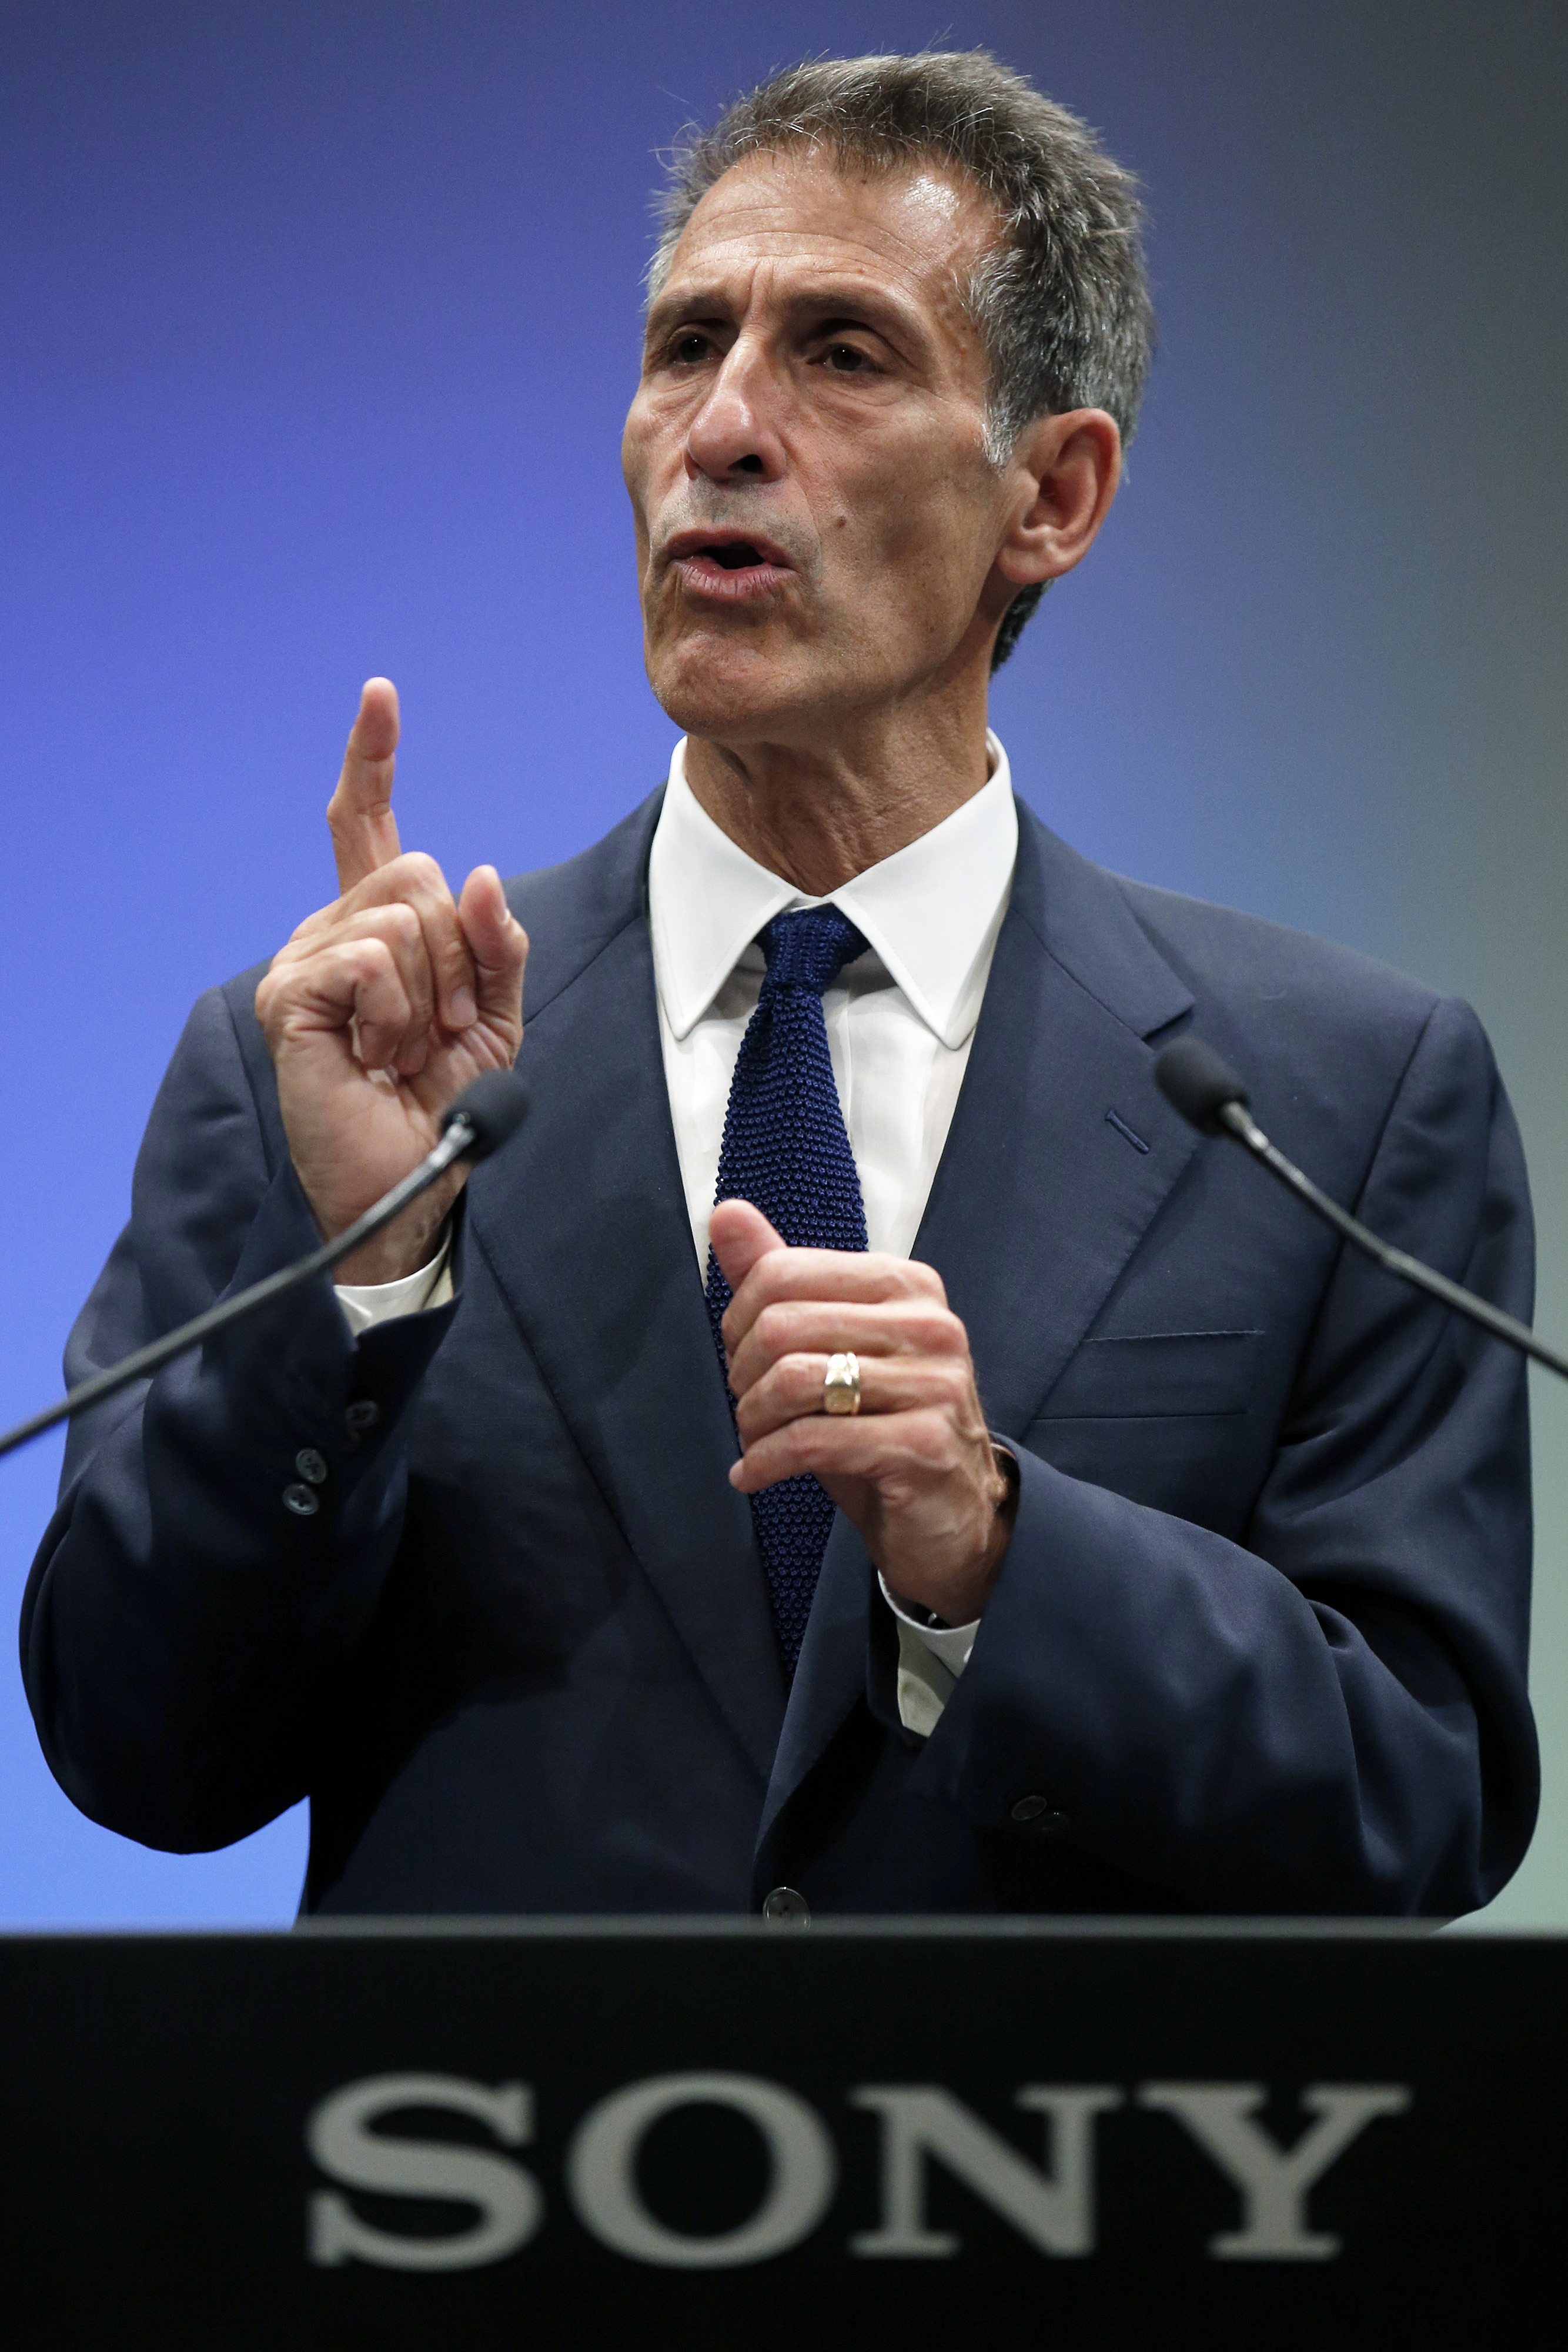 Michael Lynton, chief executive officer of Sony Pictures Entertainment Inc., gestures as he speaks during a news conference in Tokyo, Japan, on Nov. 18, 2014.